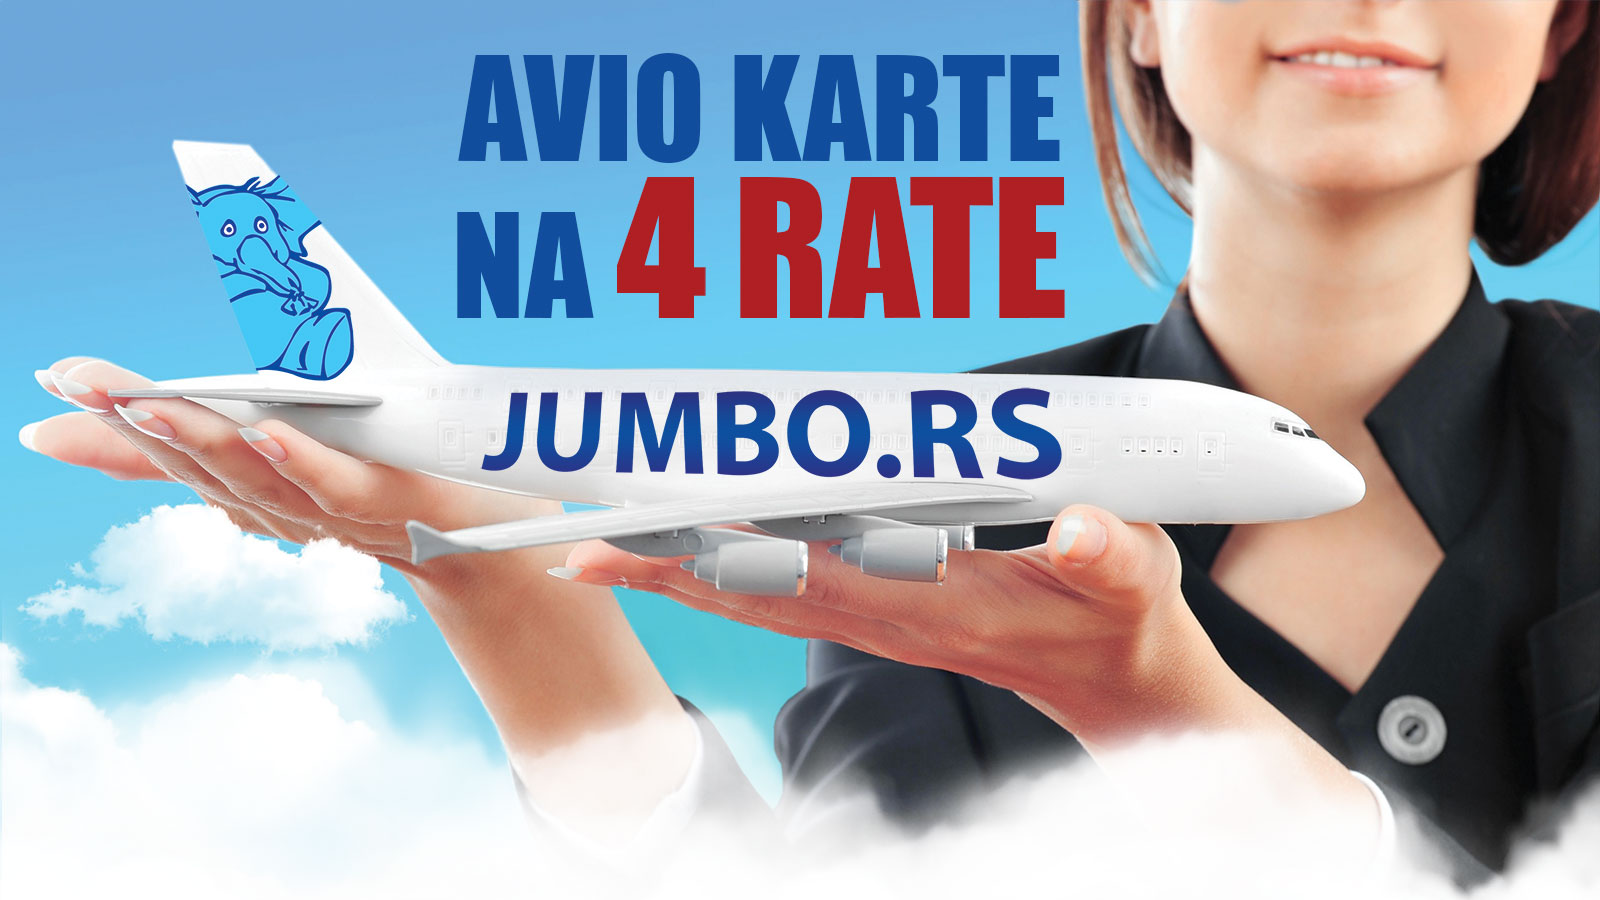 avio-karte-4-rate-slide